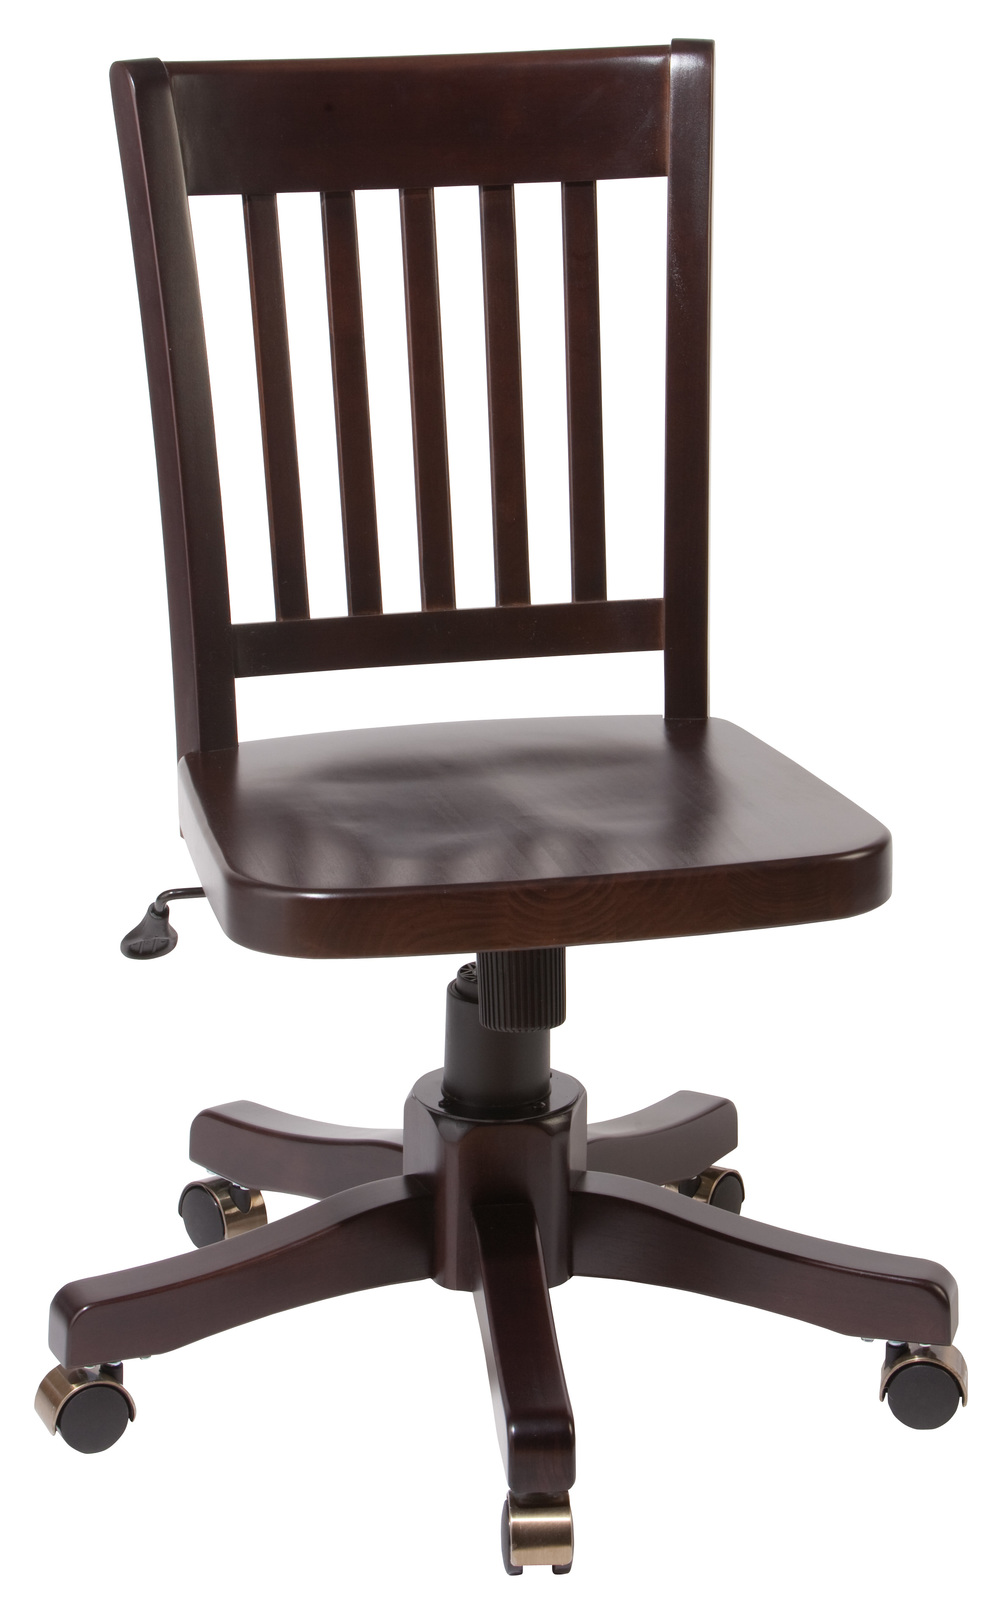 Whittier Wood Furniture - Hawthorne Office Chair